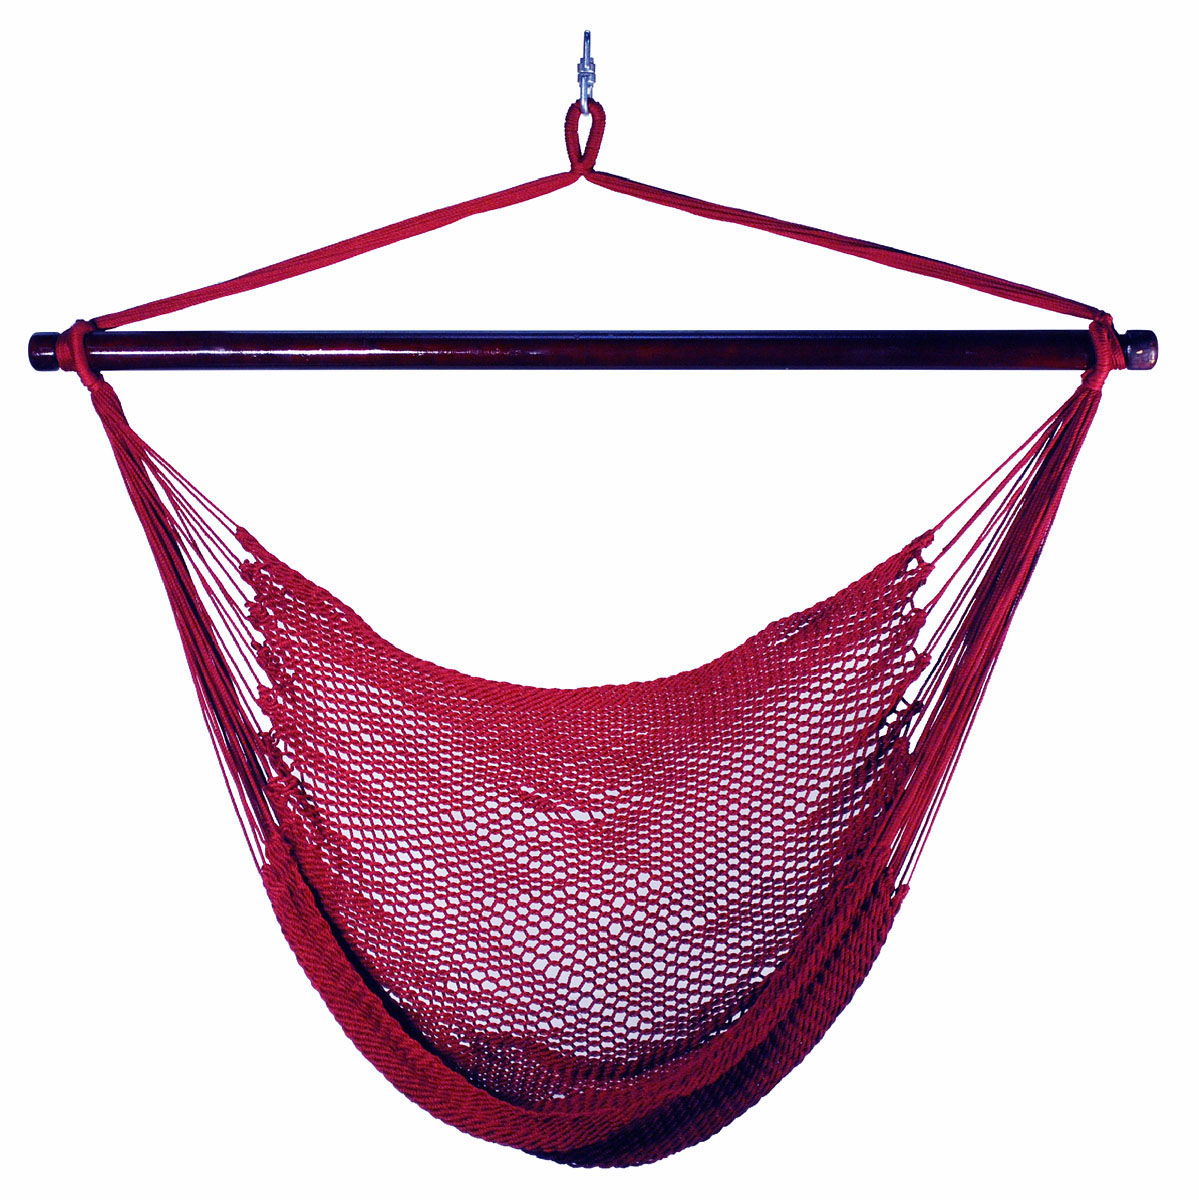 Hanging Caribbean Rope Chair - Burgundy